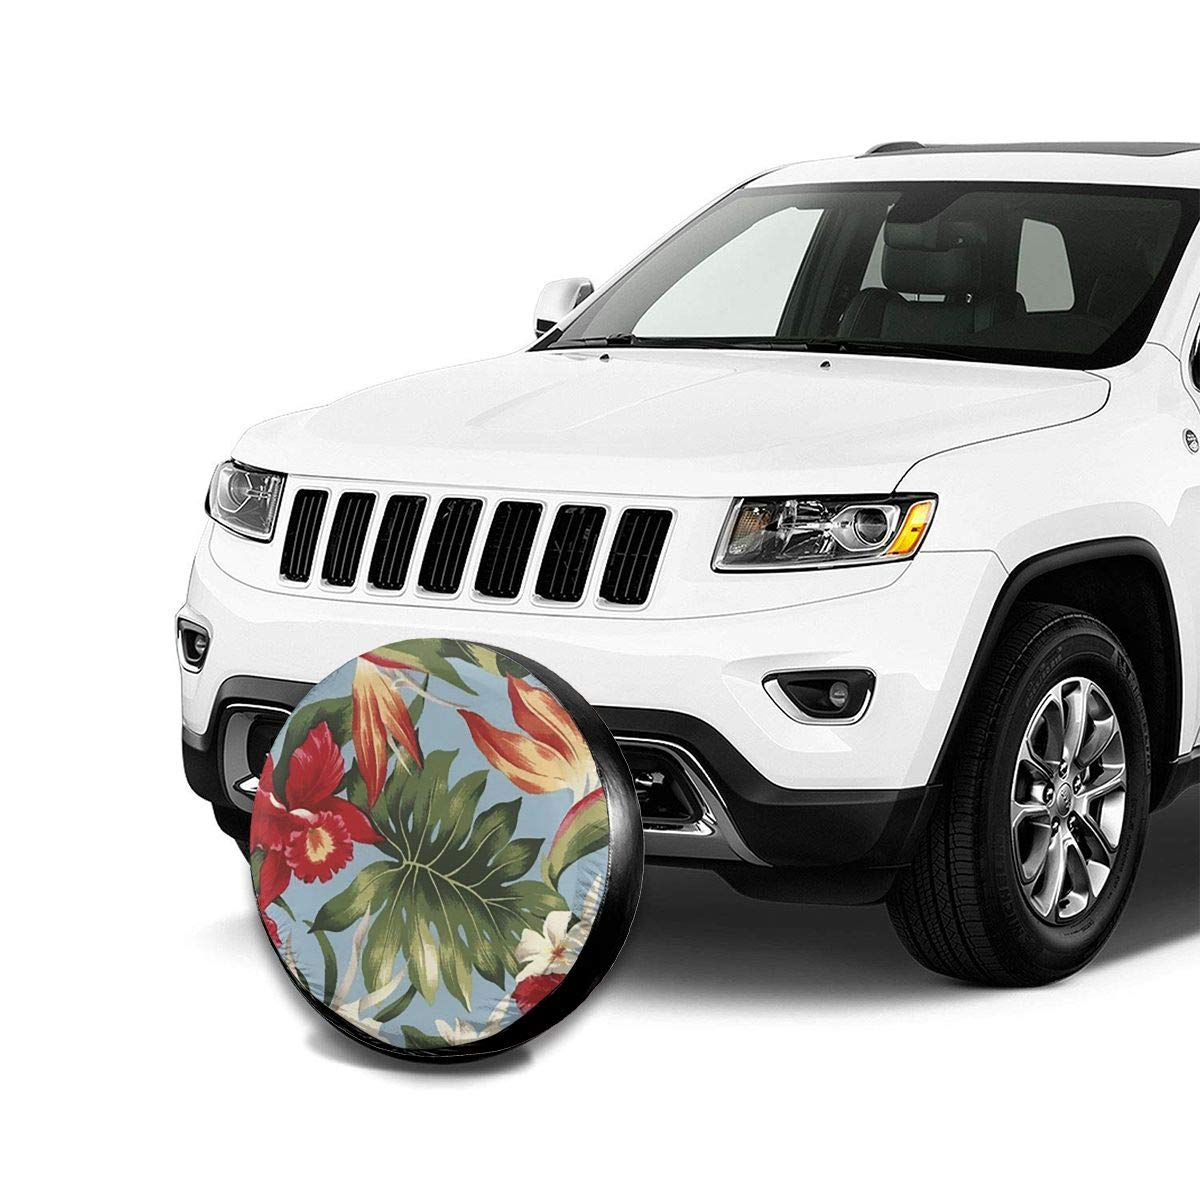 CHILL TEK Tropical Hawaiian Hibiscus Flowers Jeep Truck SUV RV Trailer Camper Car Spare Wheel Cover with Adjustable String and Buckle Design Durable Easy to Clean